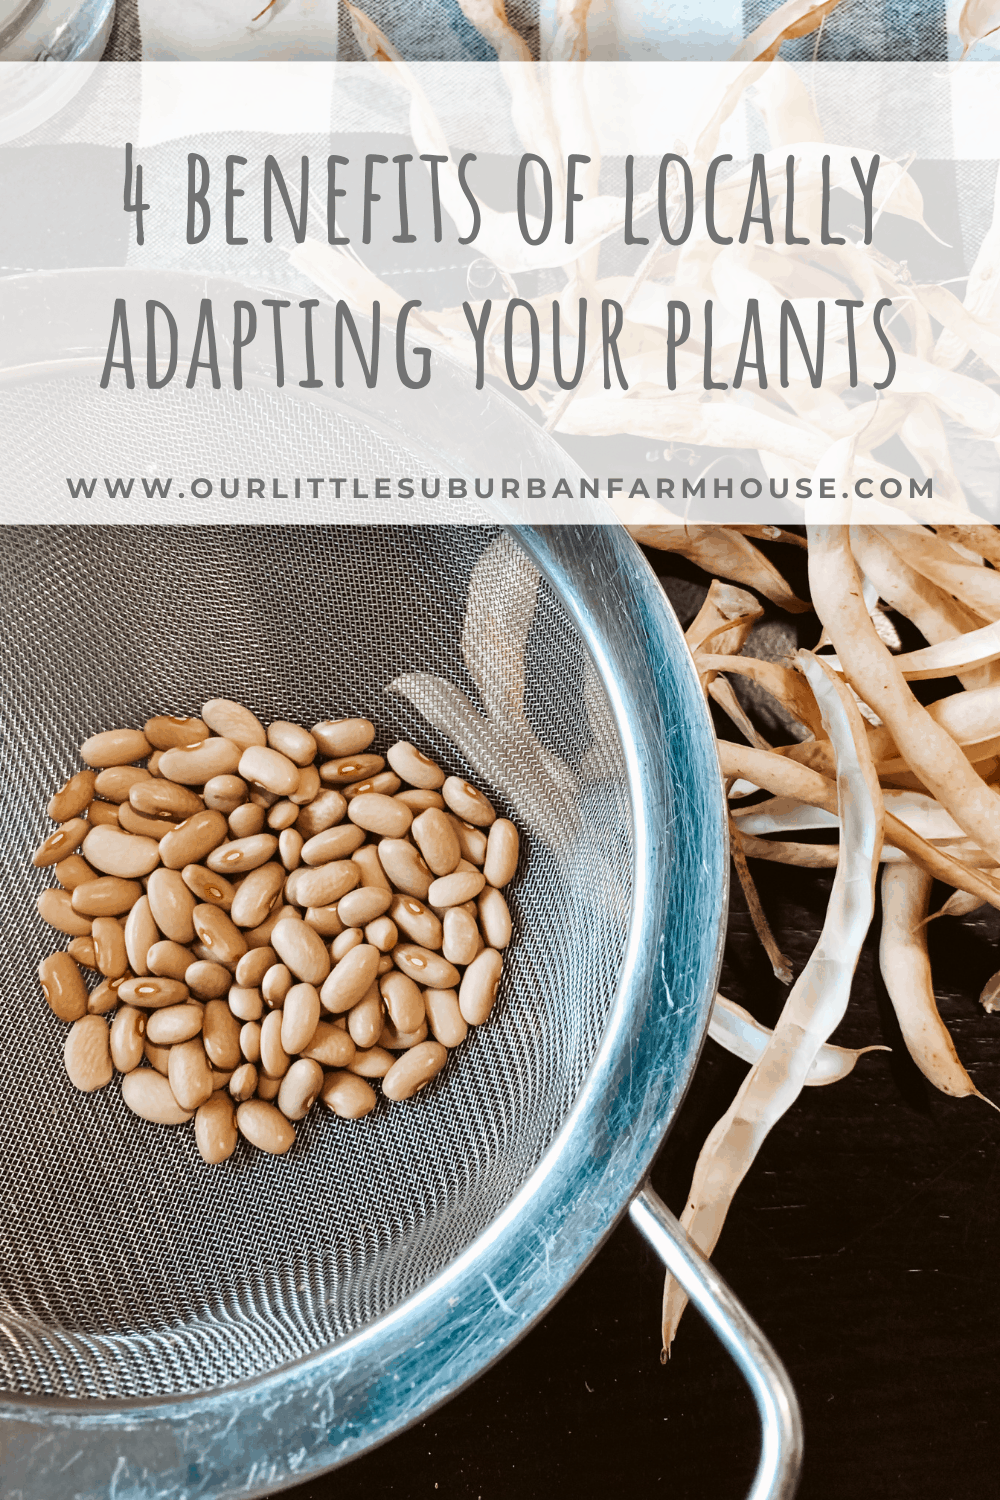 Locally adapting your plants